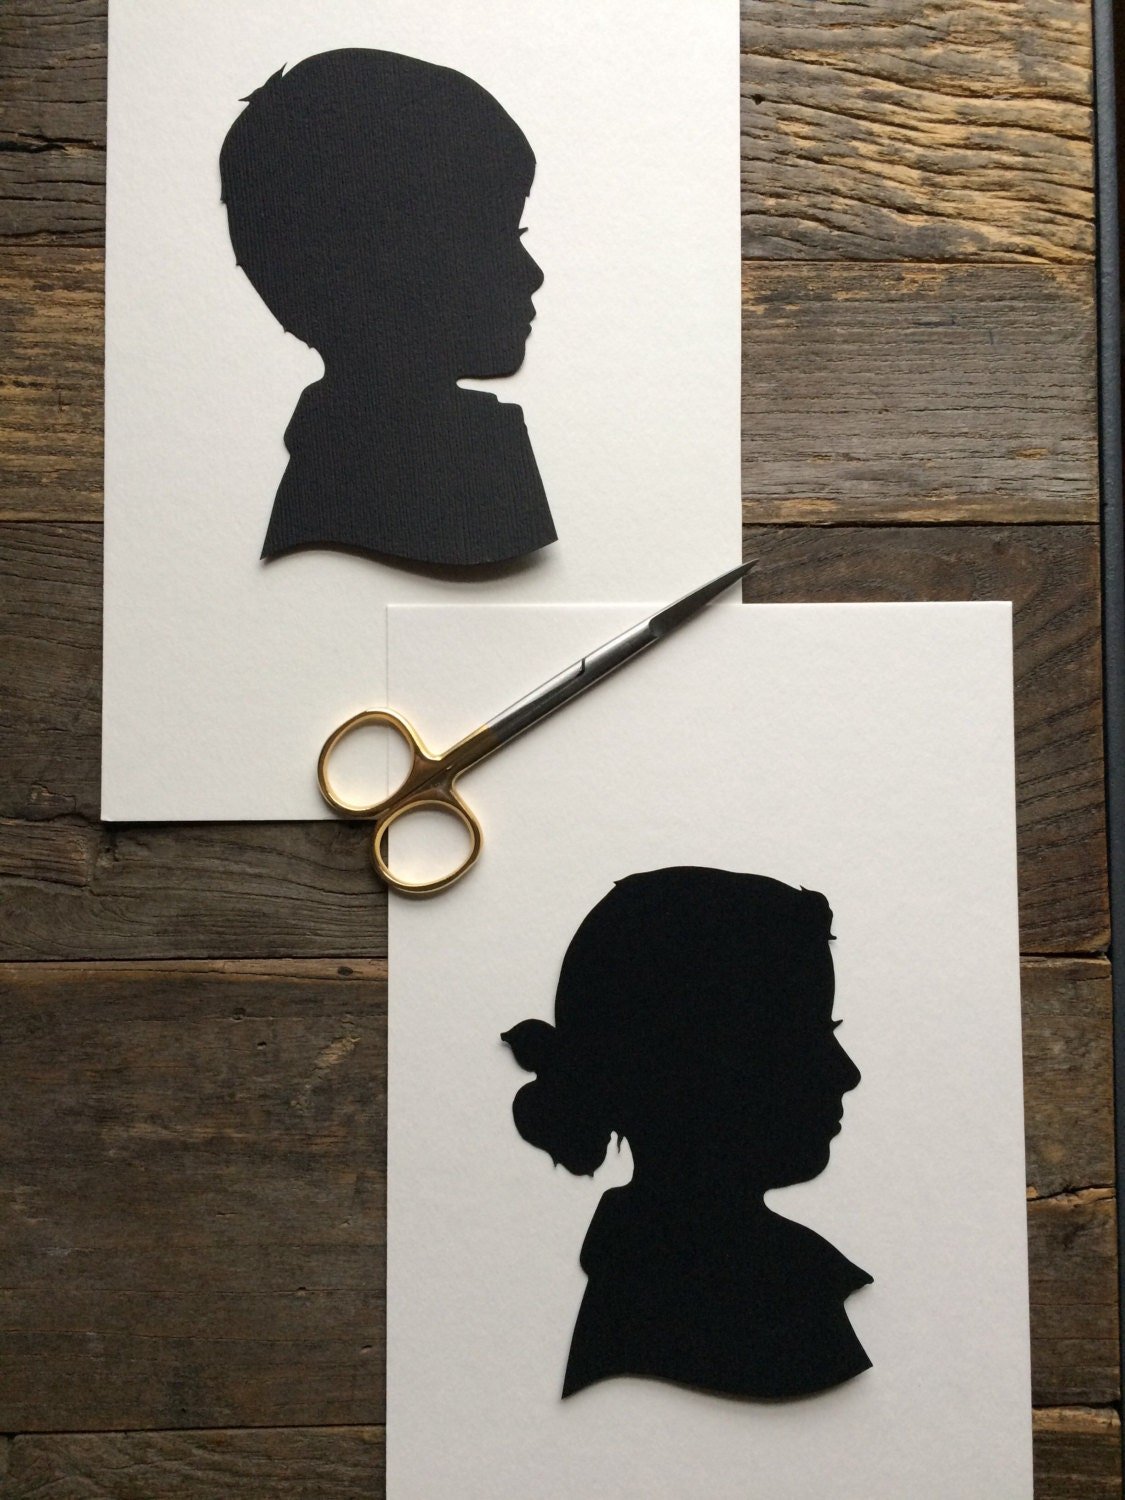 silhouette paper The silhouette paper has a matte black finish on one side and is white on the reverse side the paper measures 8-1/2 x 11 inches and comes with 25 sheets per pack.